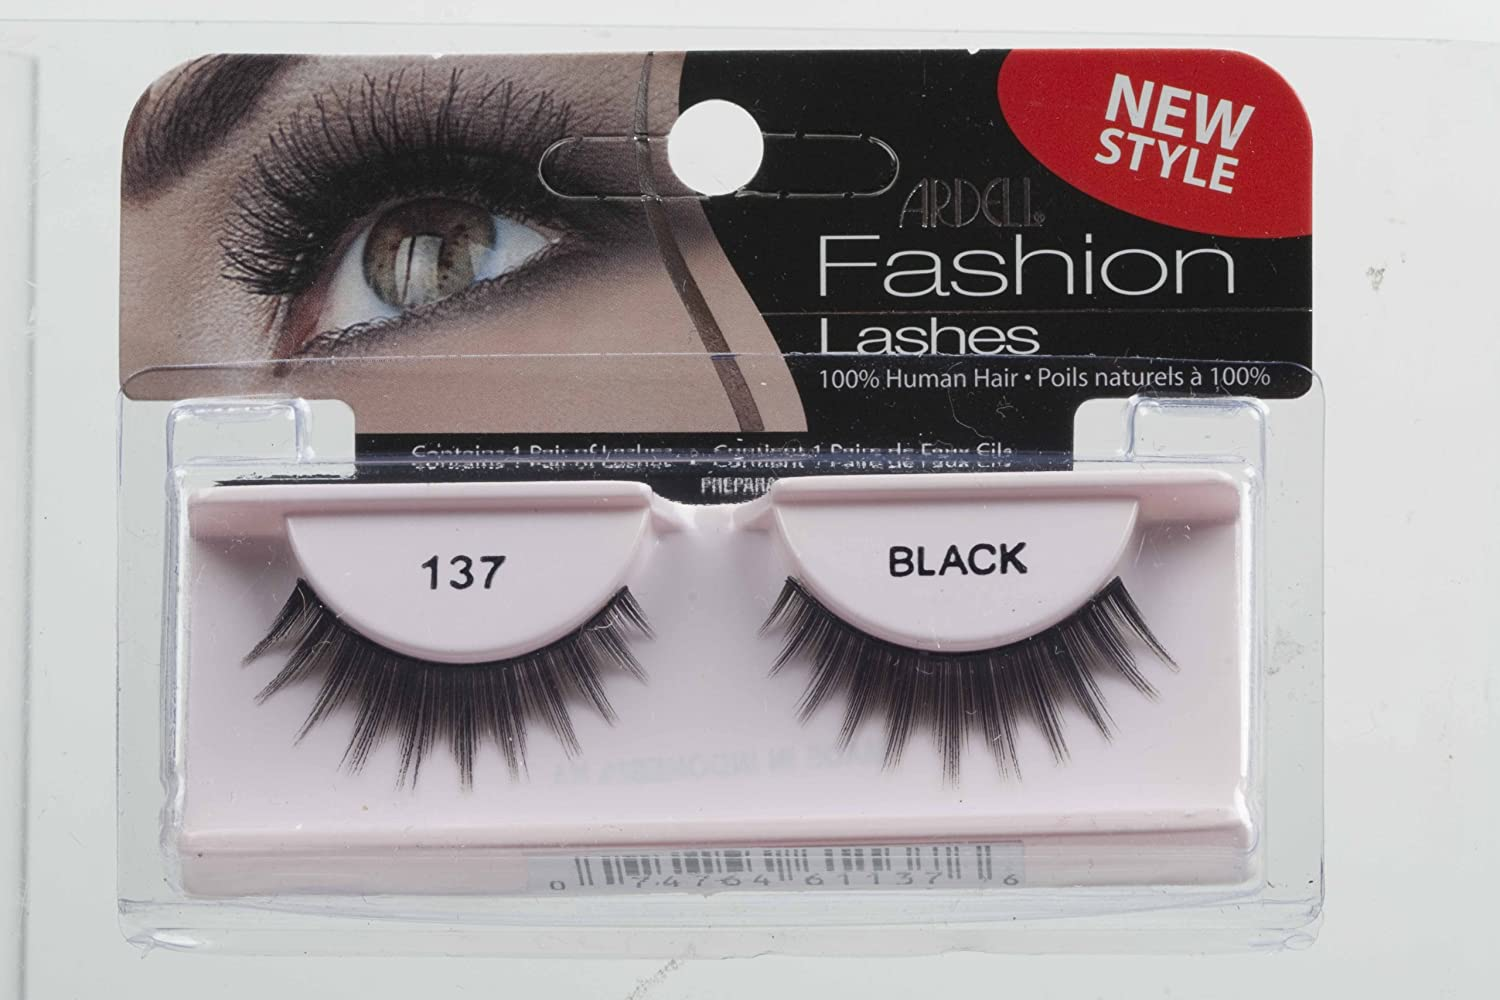 ff8089bcc2a Amazon.com : Ardell Fashion Lashes Pair - 137 (Pack of 4) : Beauty